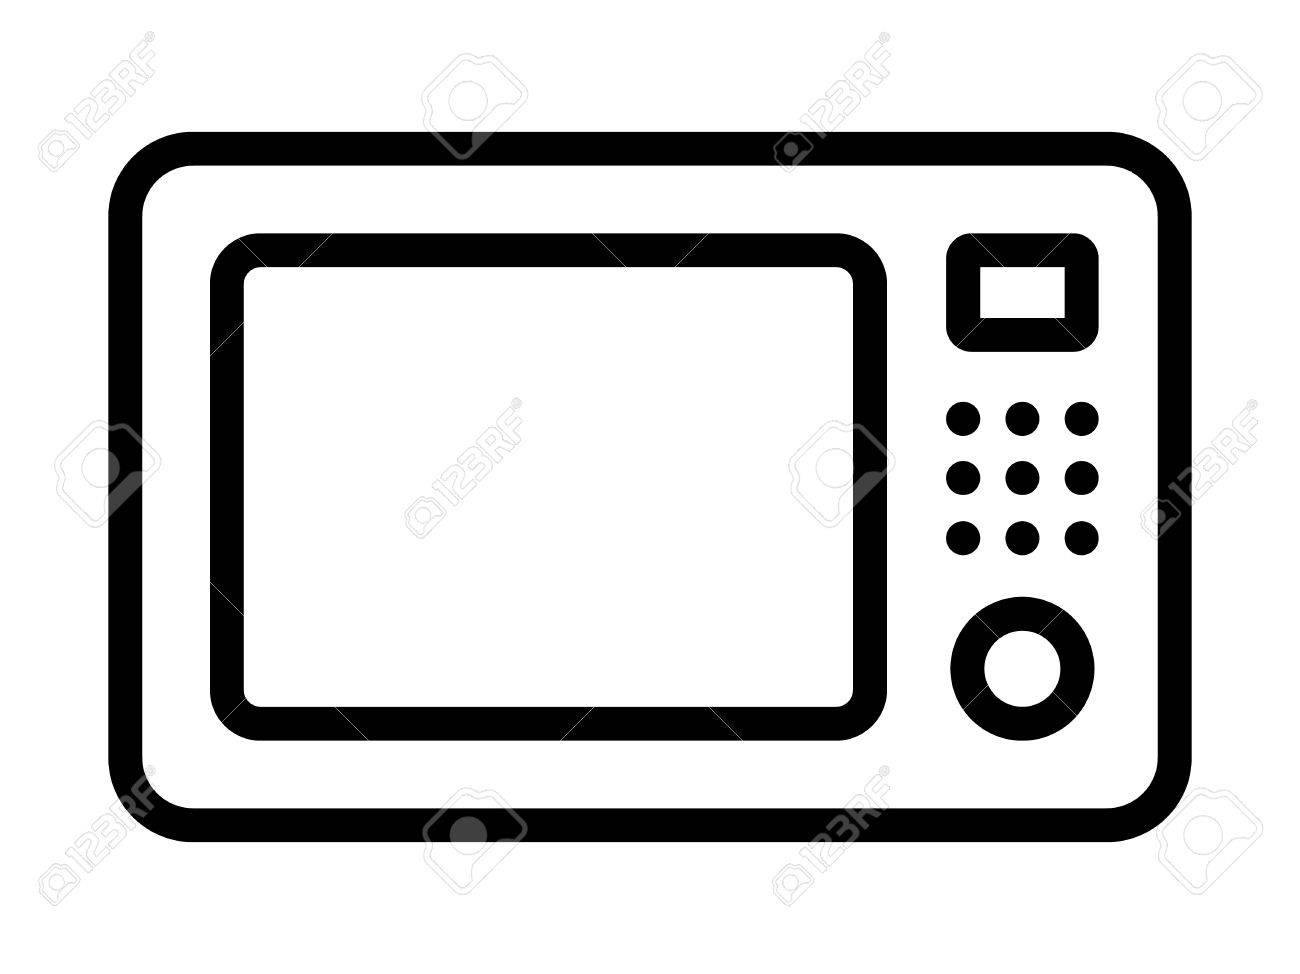 Microwave Oven Clipart.